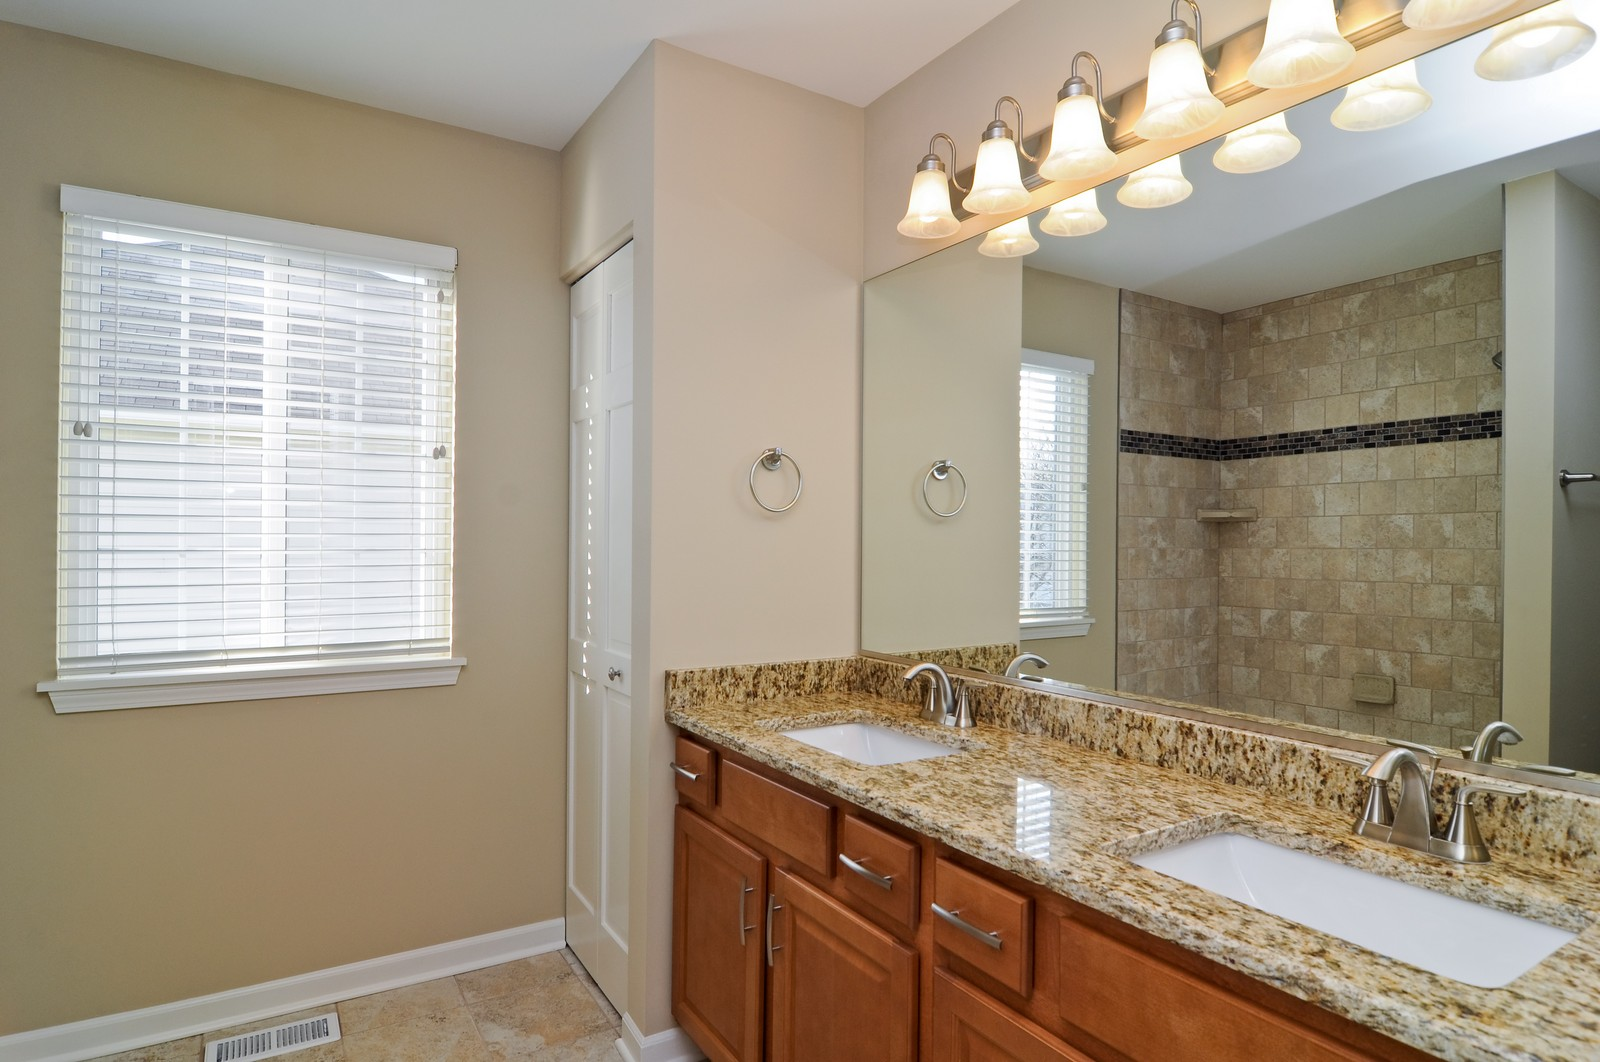 Real Estate Photography - 7394 Brentwood, Gurnee, IL, 60031 - Bathroom